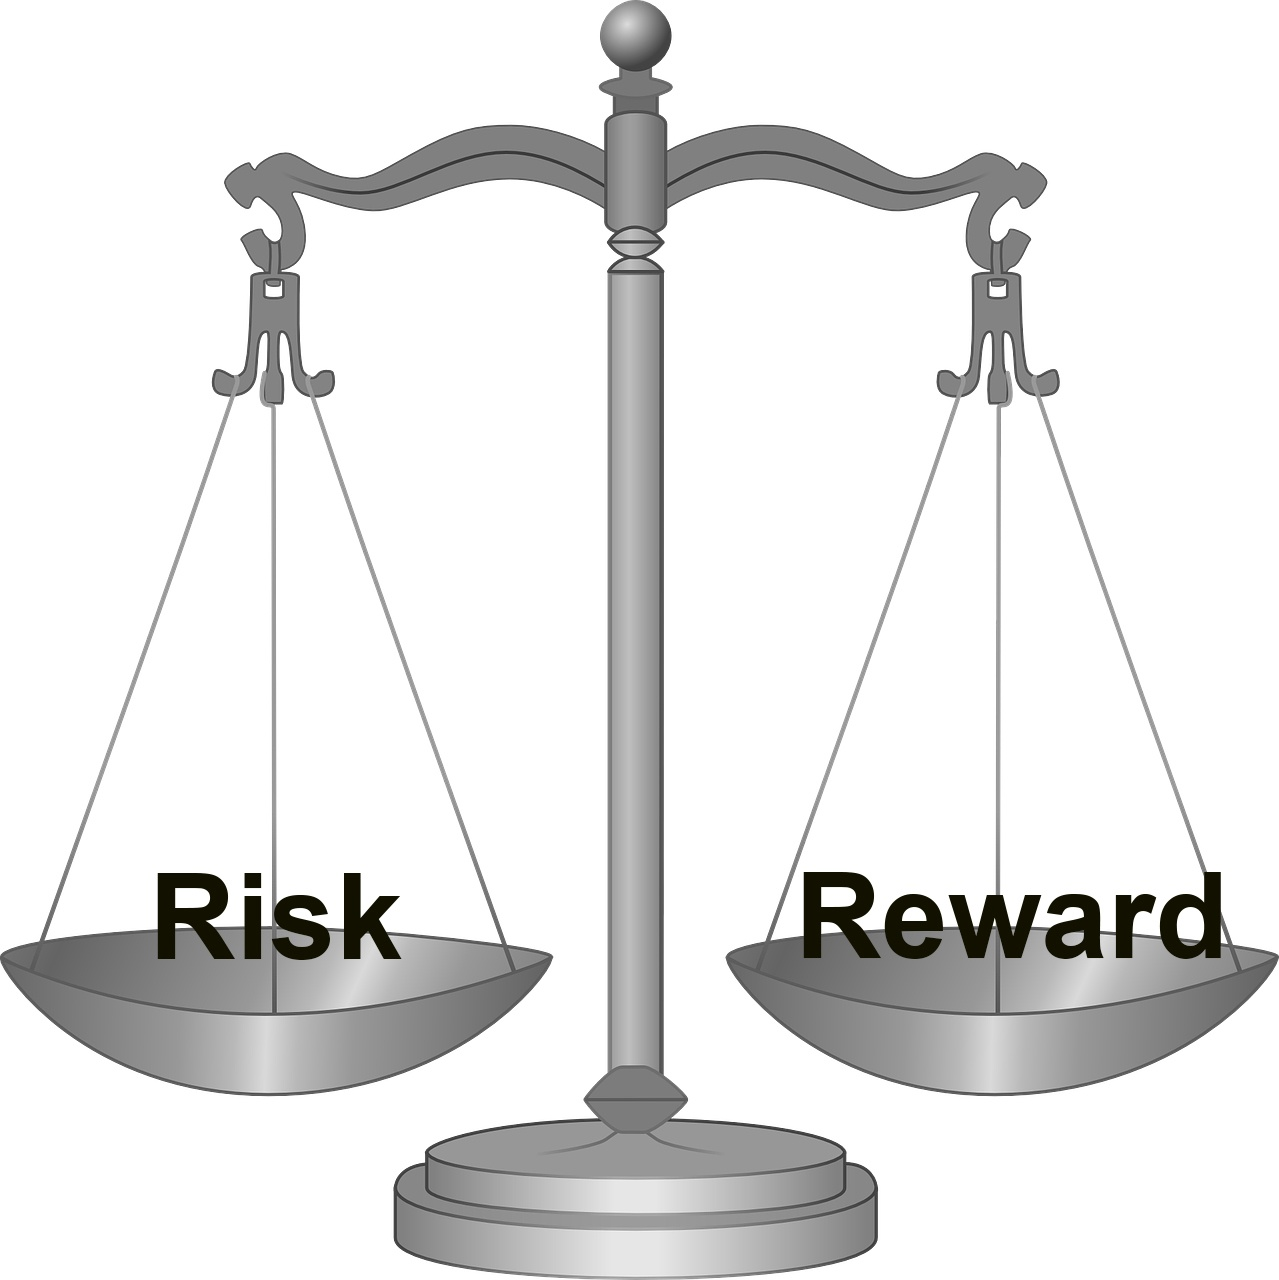 risk_reward.jpg